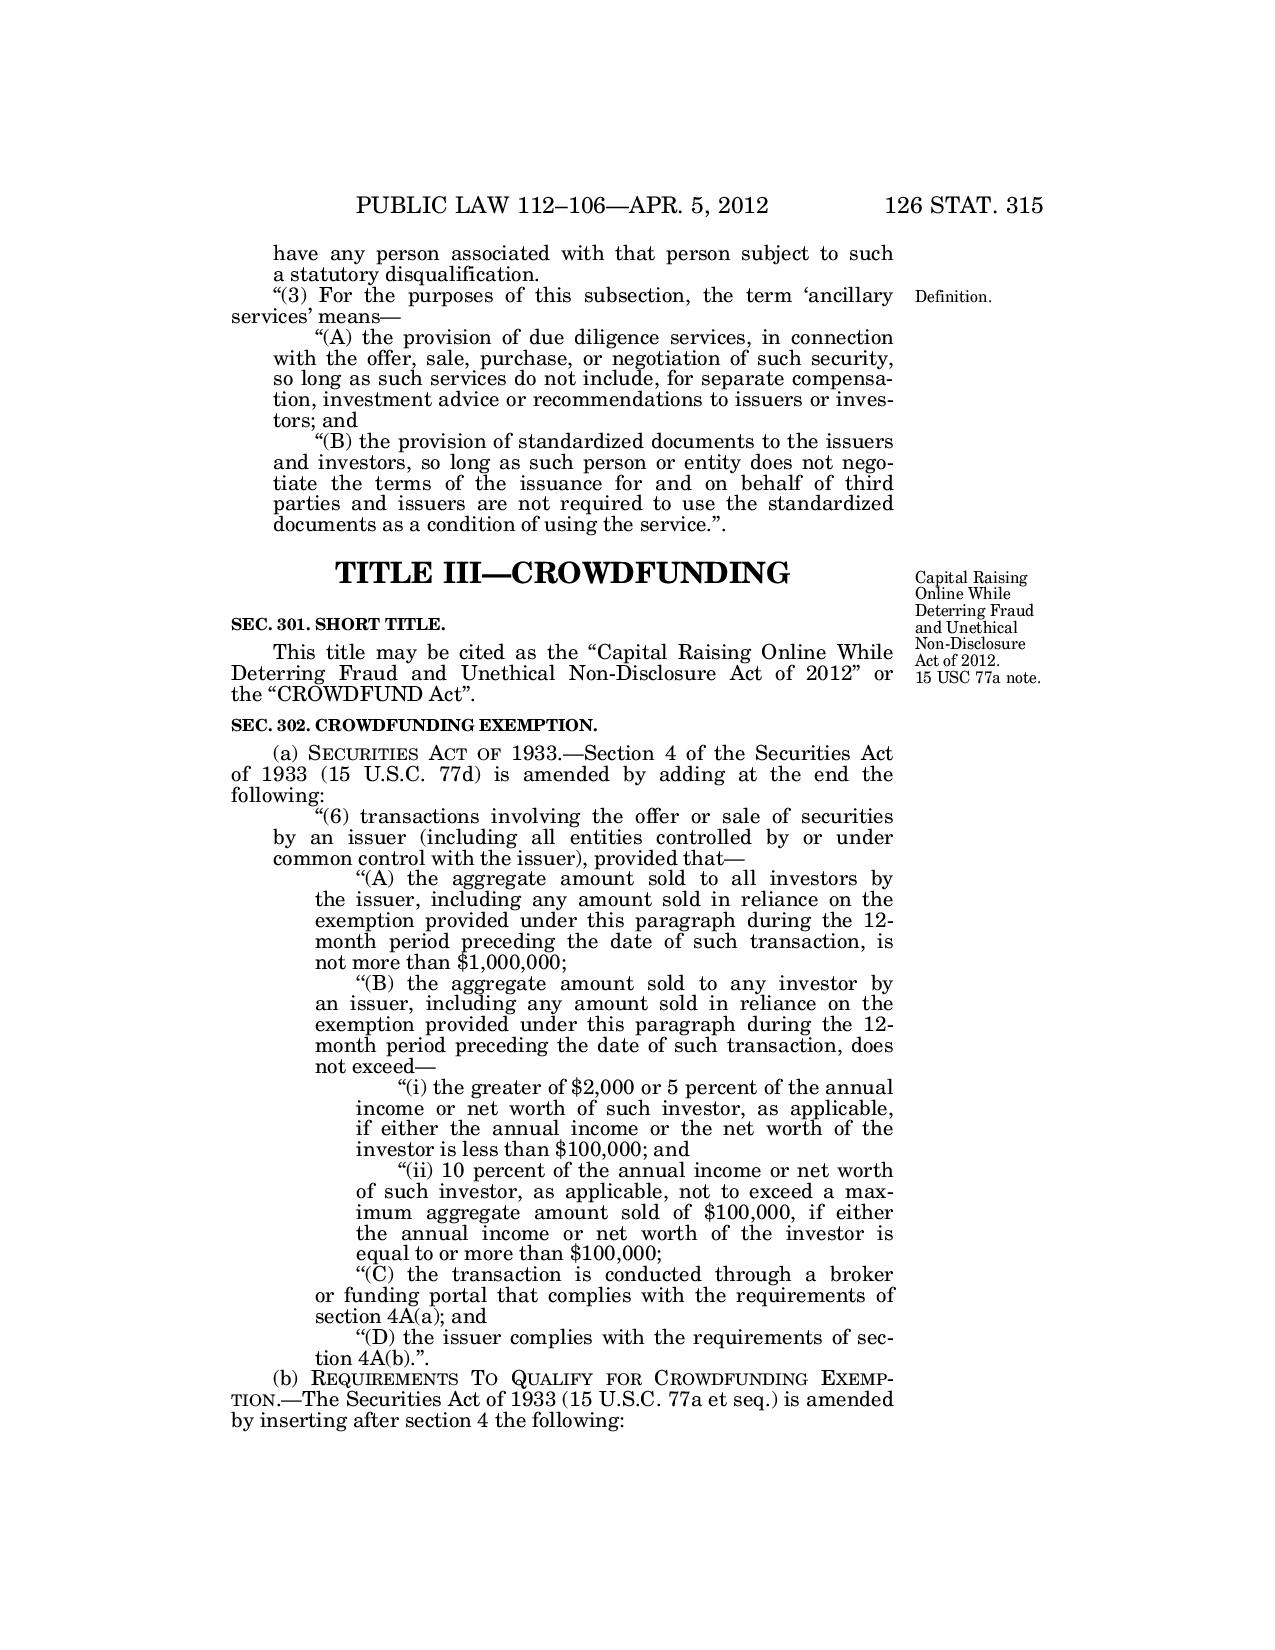 331653864-The-Jumpstart-Our-Business-Startups-Act-JOBS-Act-April-5-of-2012-page-011.jpg